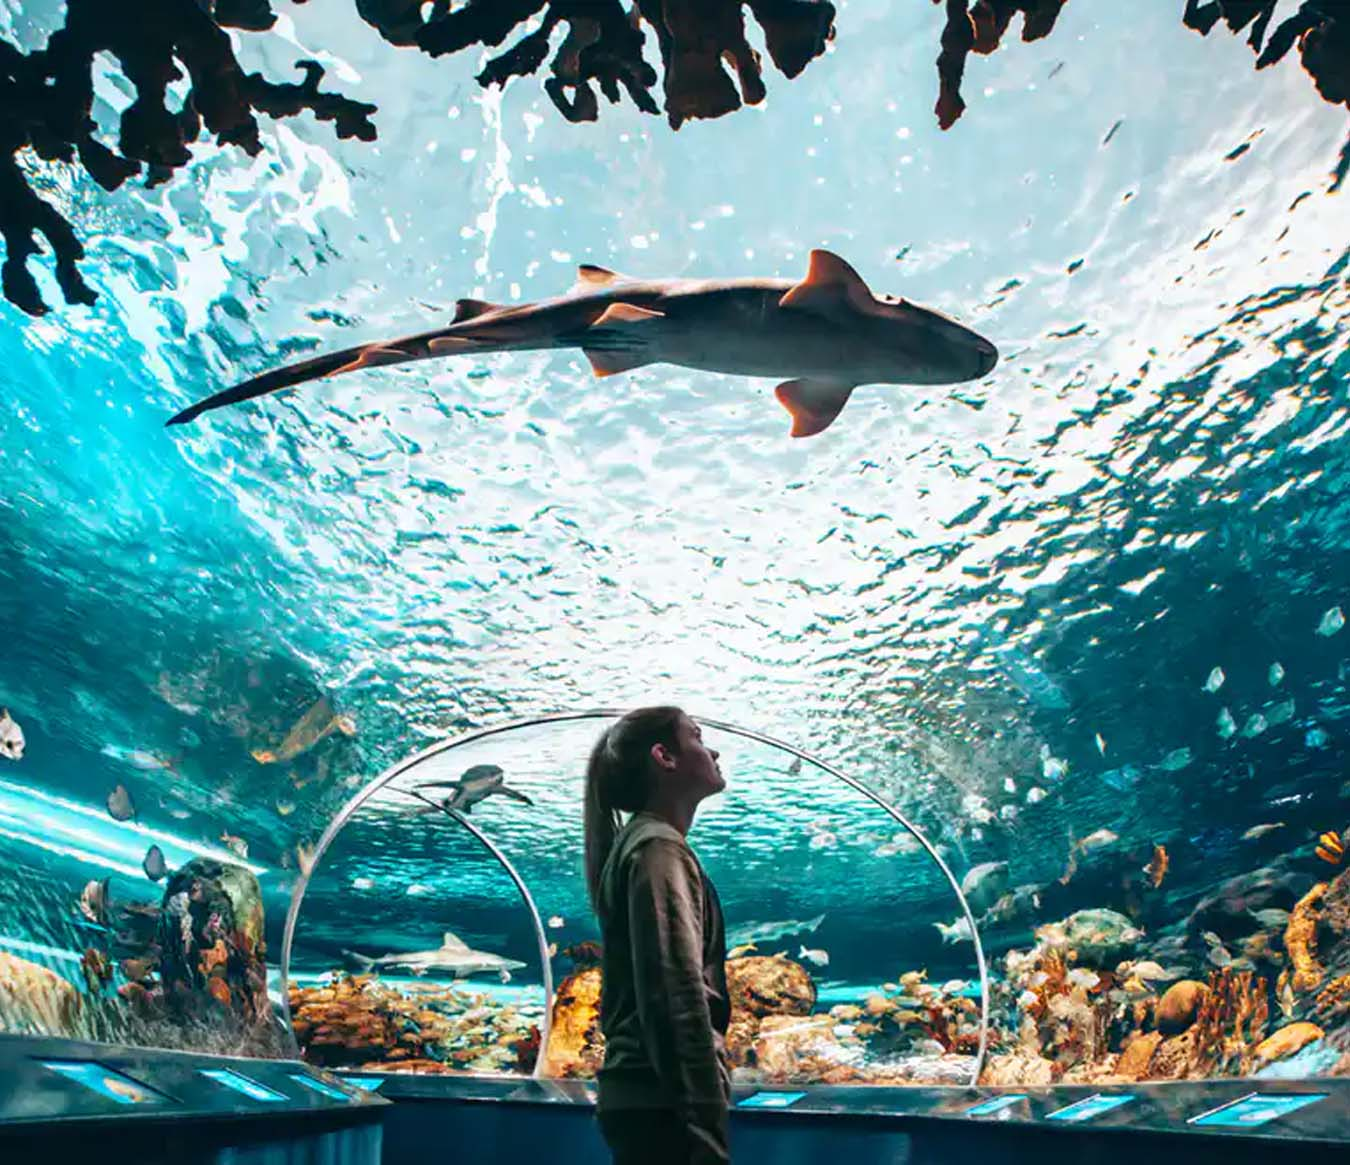 Things to Do in Toronto - Ripley's Aquarium